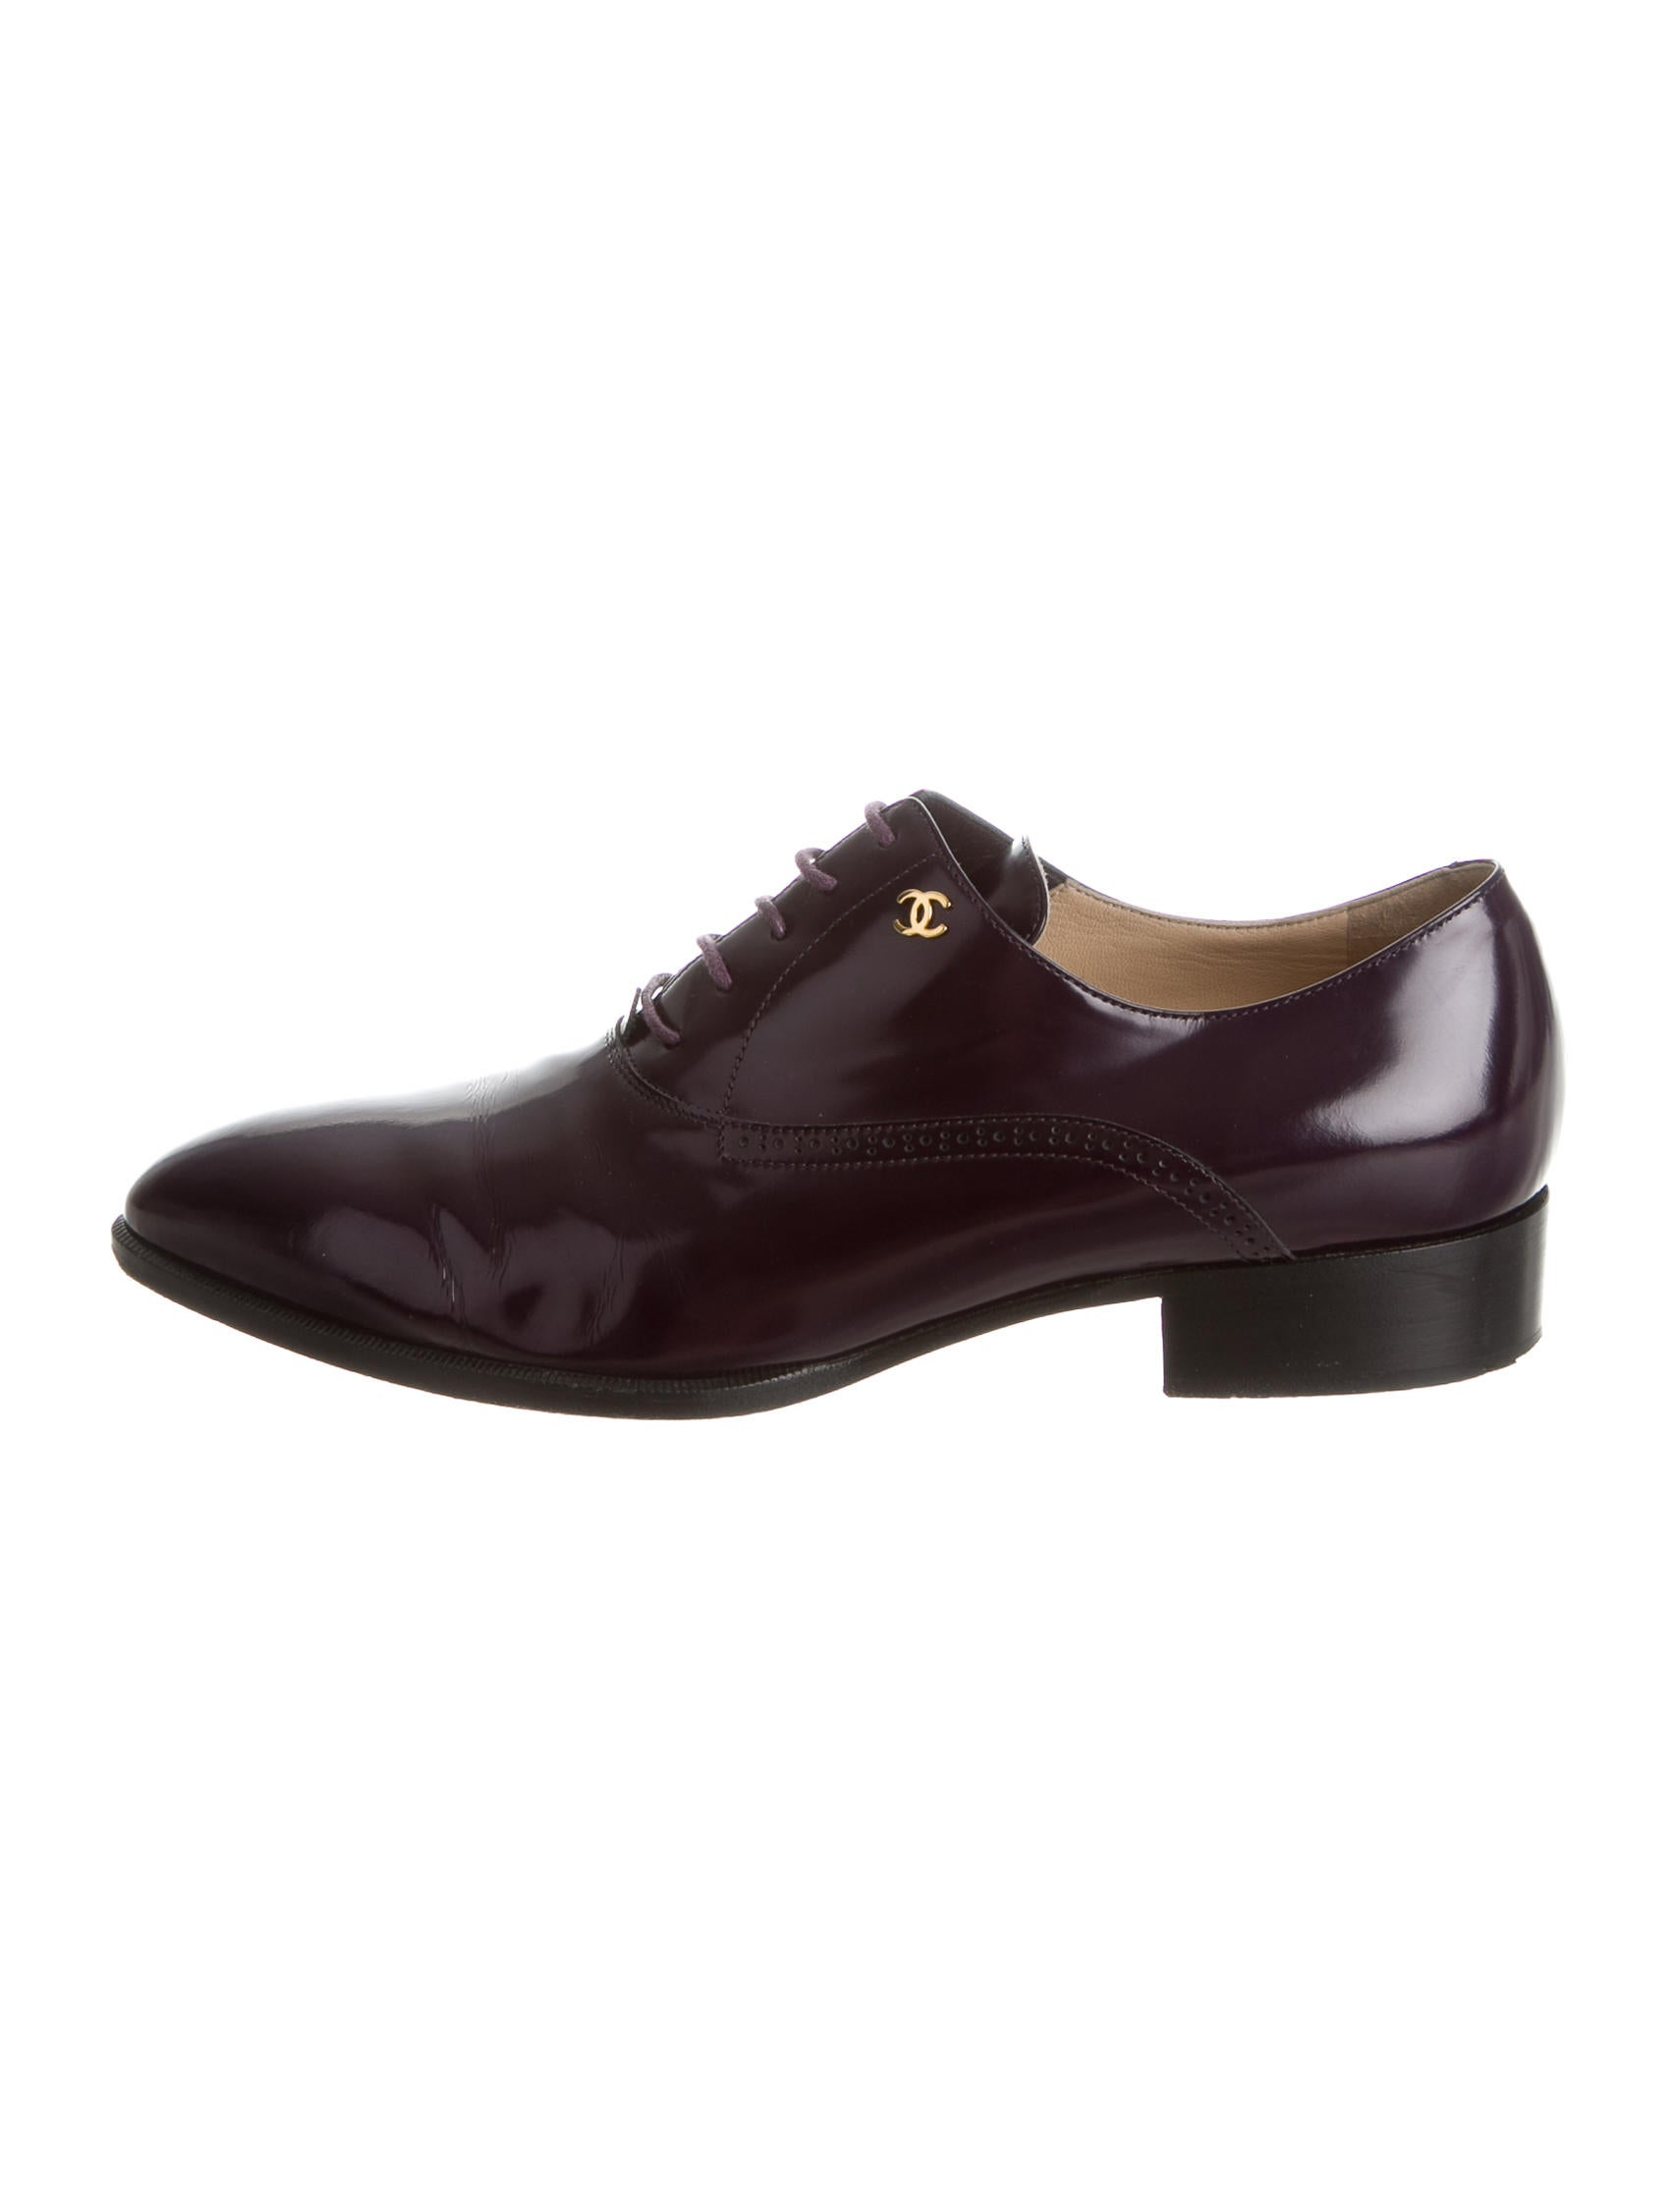 See how others are styling the Patent Leather Block Heel Ring Pointy Oxfords. Check if your friends own the product and find other recommended products to complete the look.